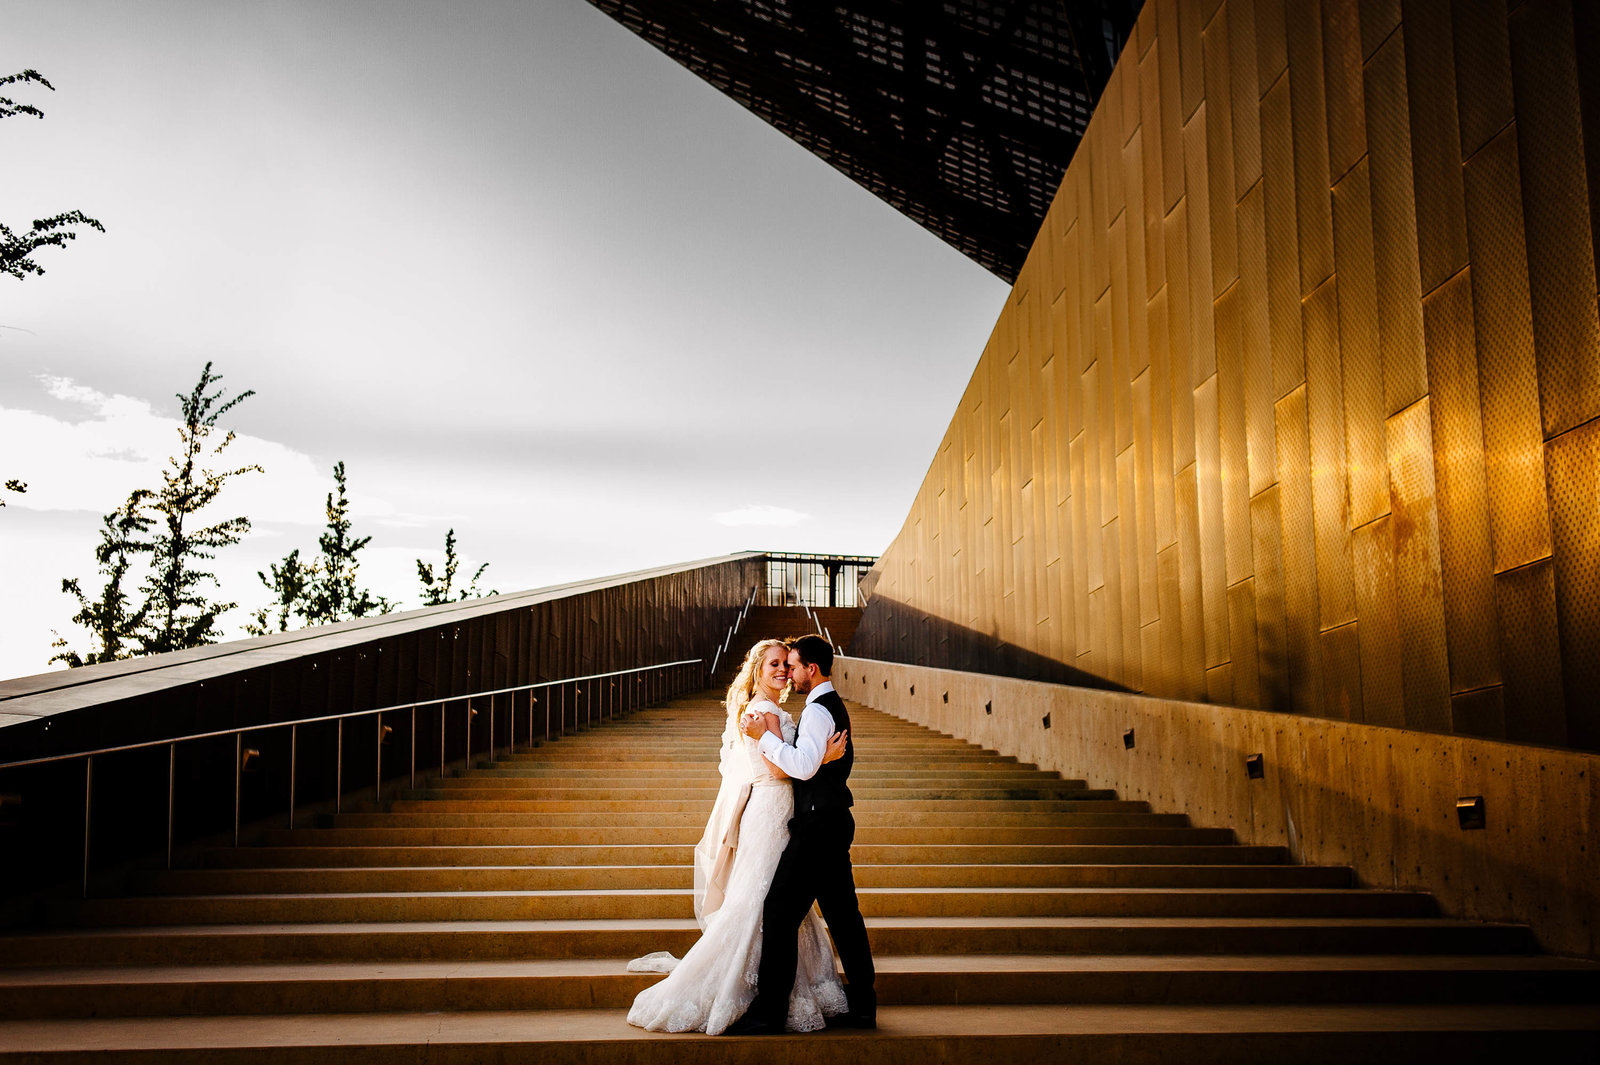 302-El-paso-wedding-photographer-El Paso Wedding Photographer_P18